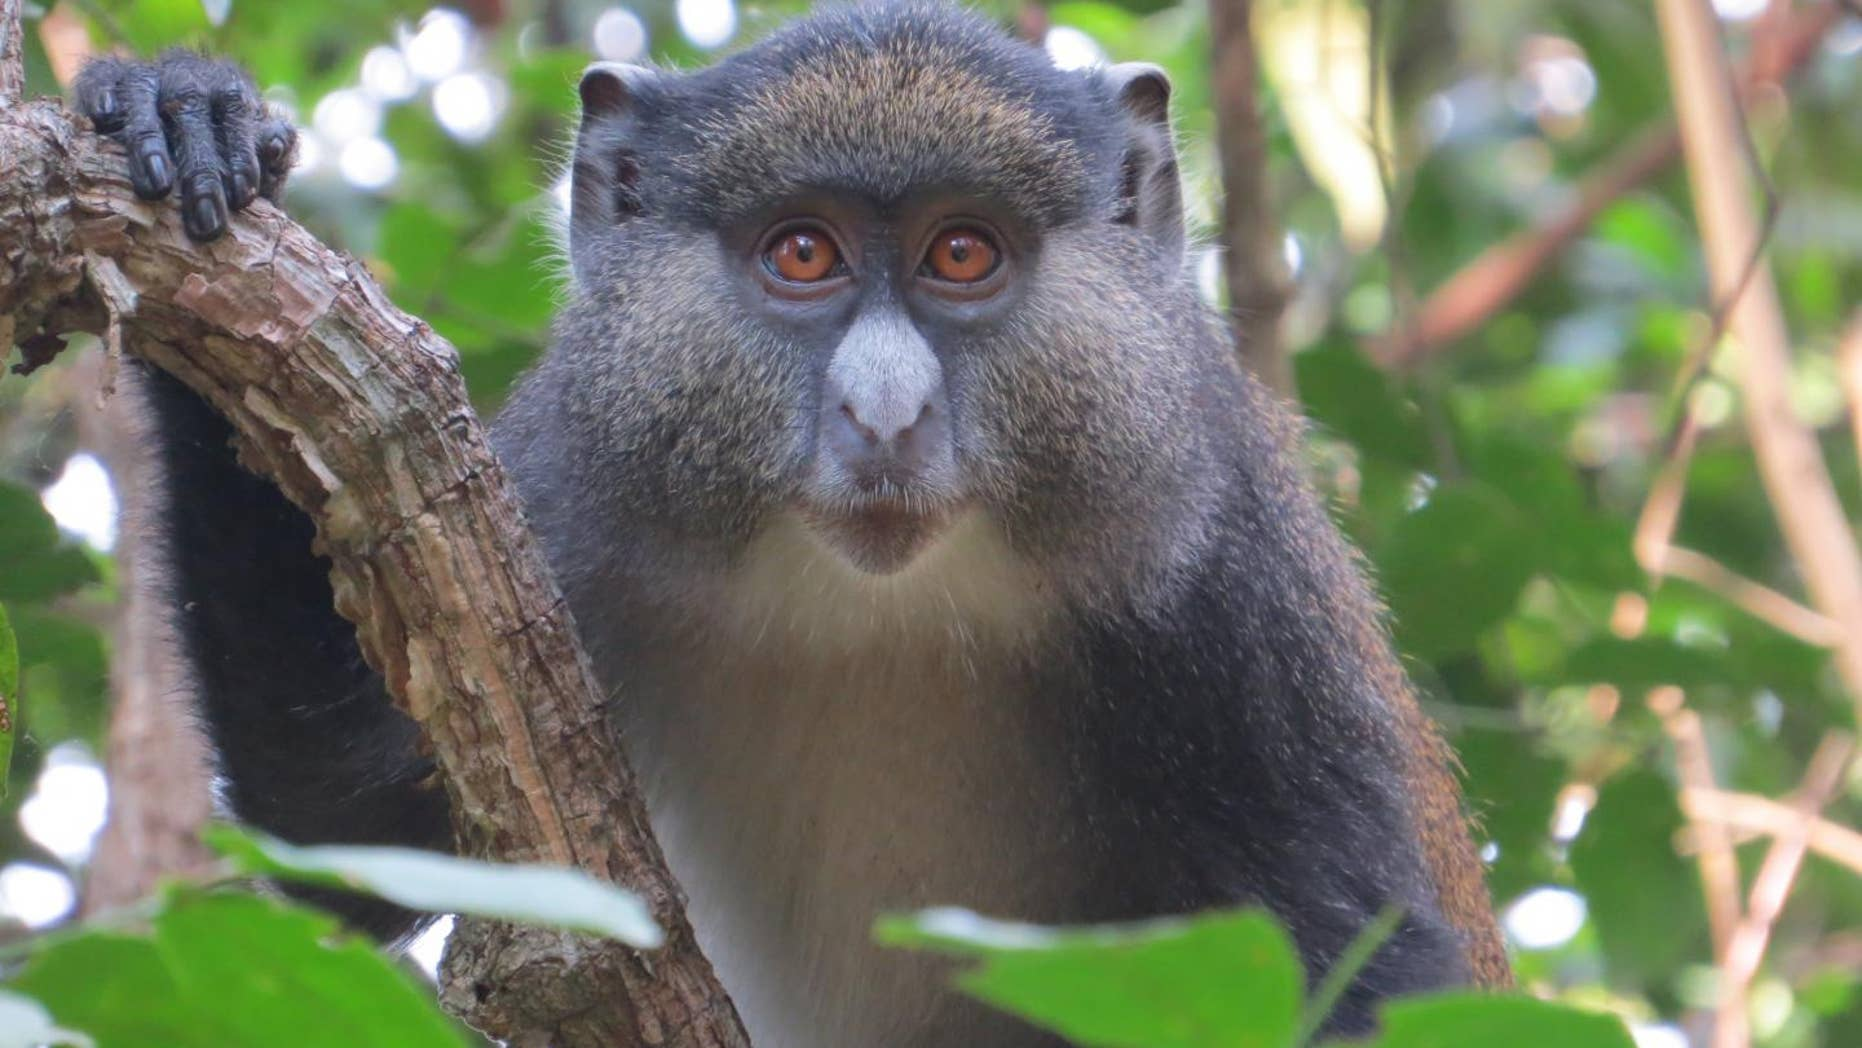 Thanks. Picture of monkey having sex necessary